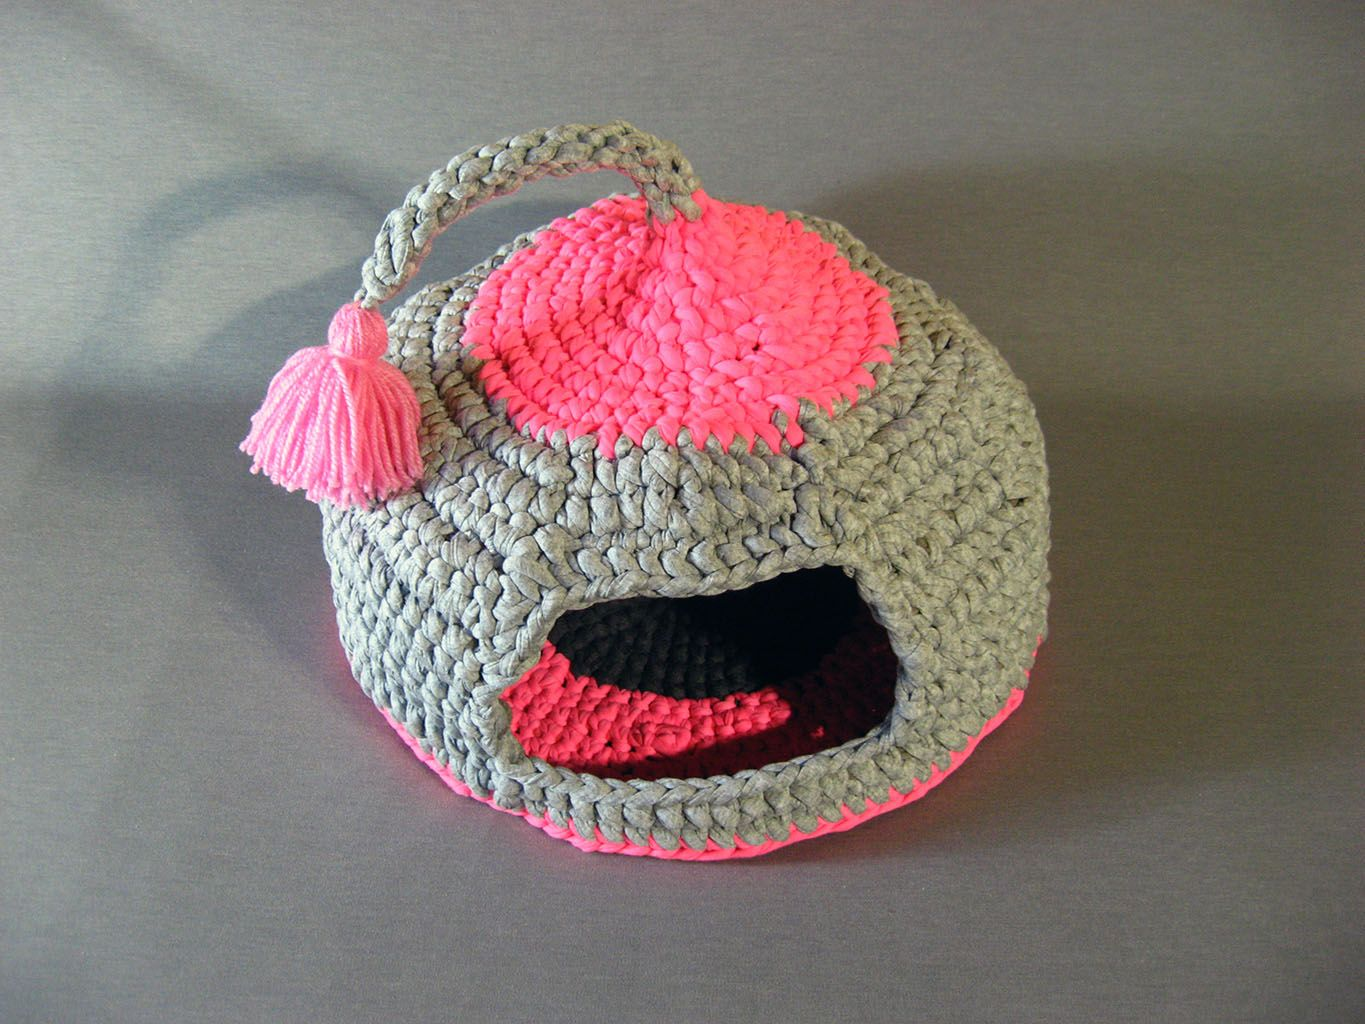 Crochet cat bed cat cave pet house Tshirt yarn with tassel for playing https://www.etsy.com/shop/EnebrOso?section_id=16780006&ref=shopsection_leftnav_9